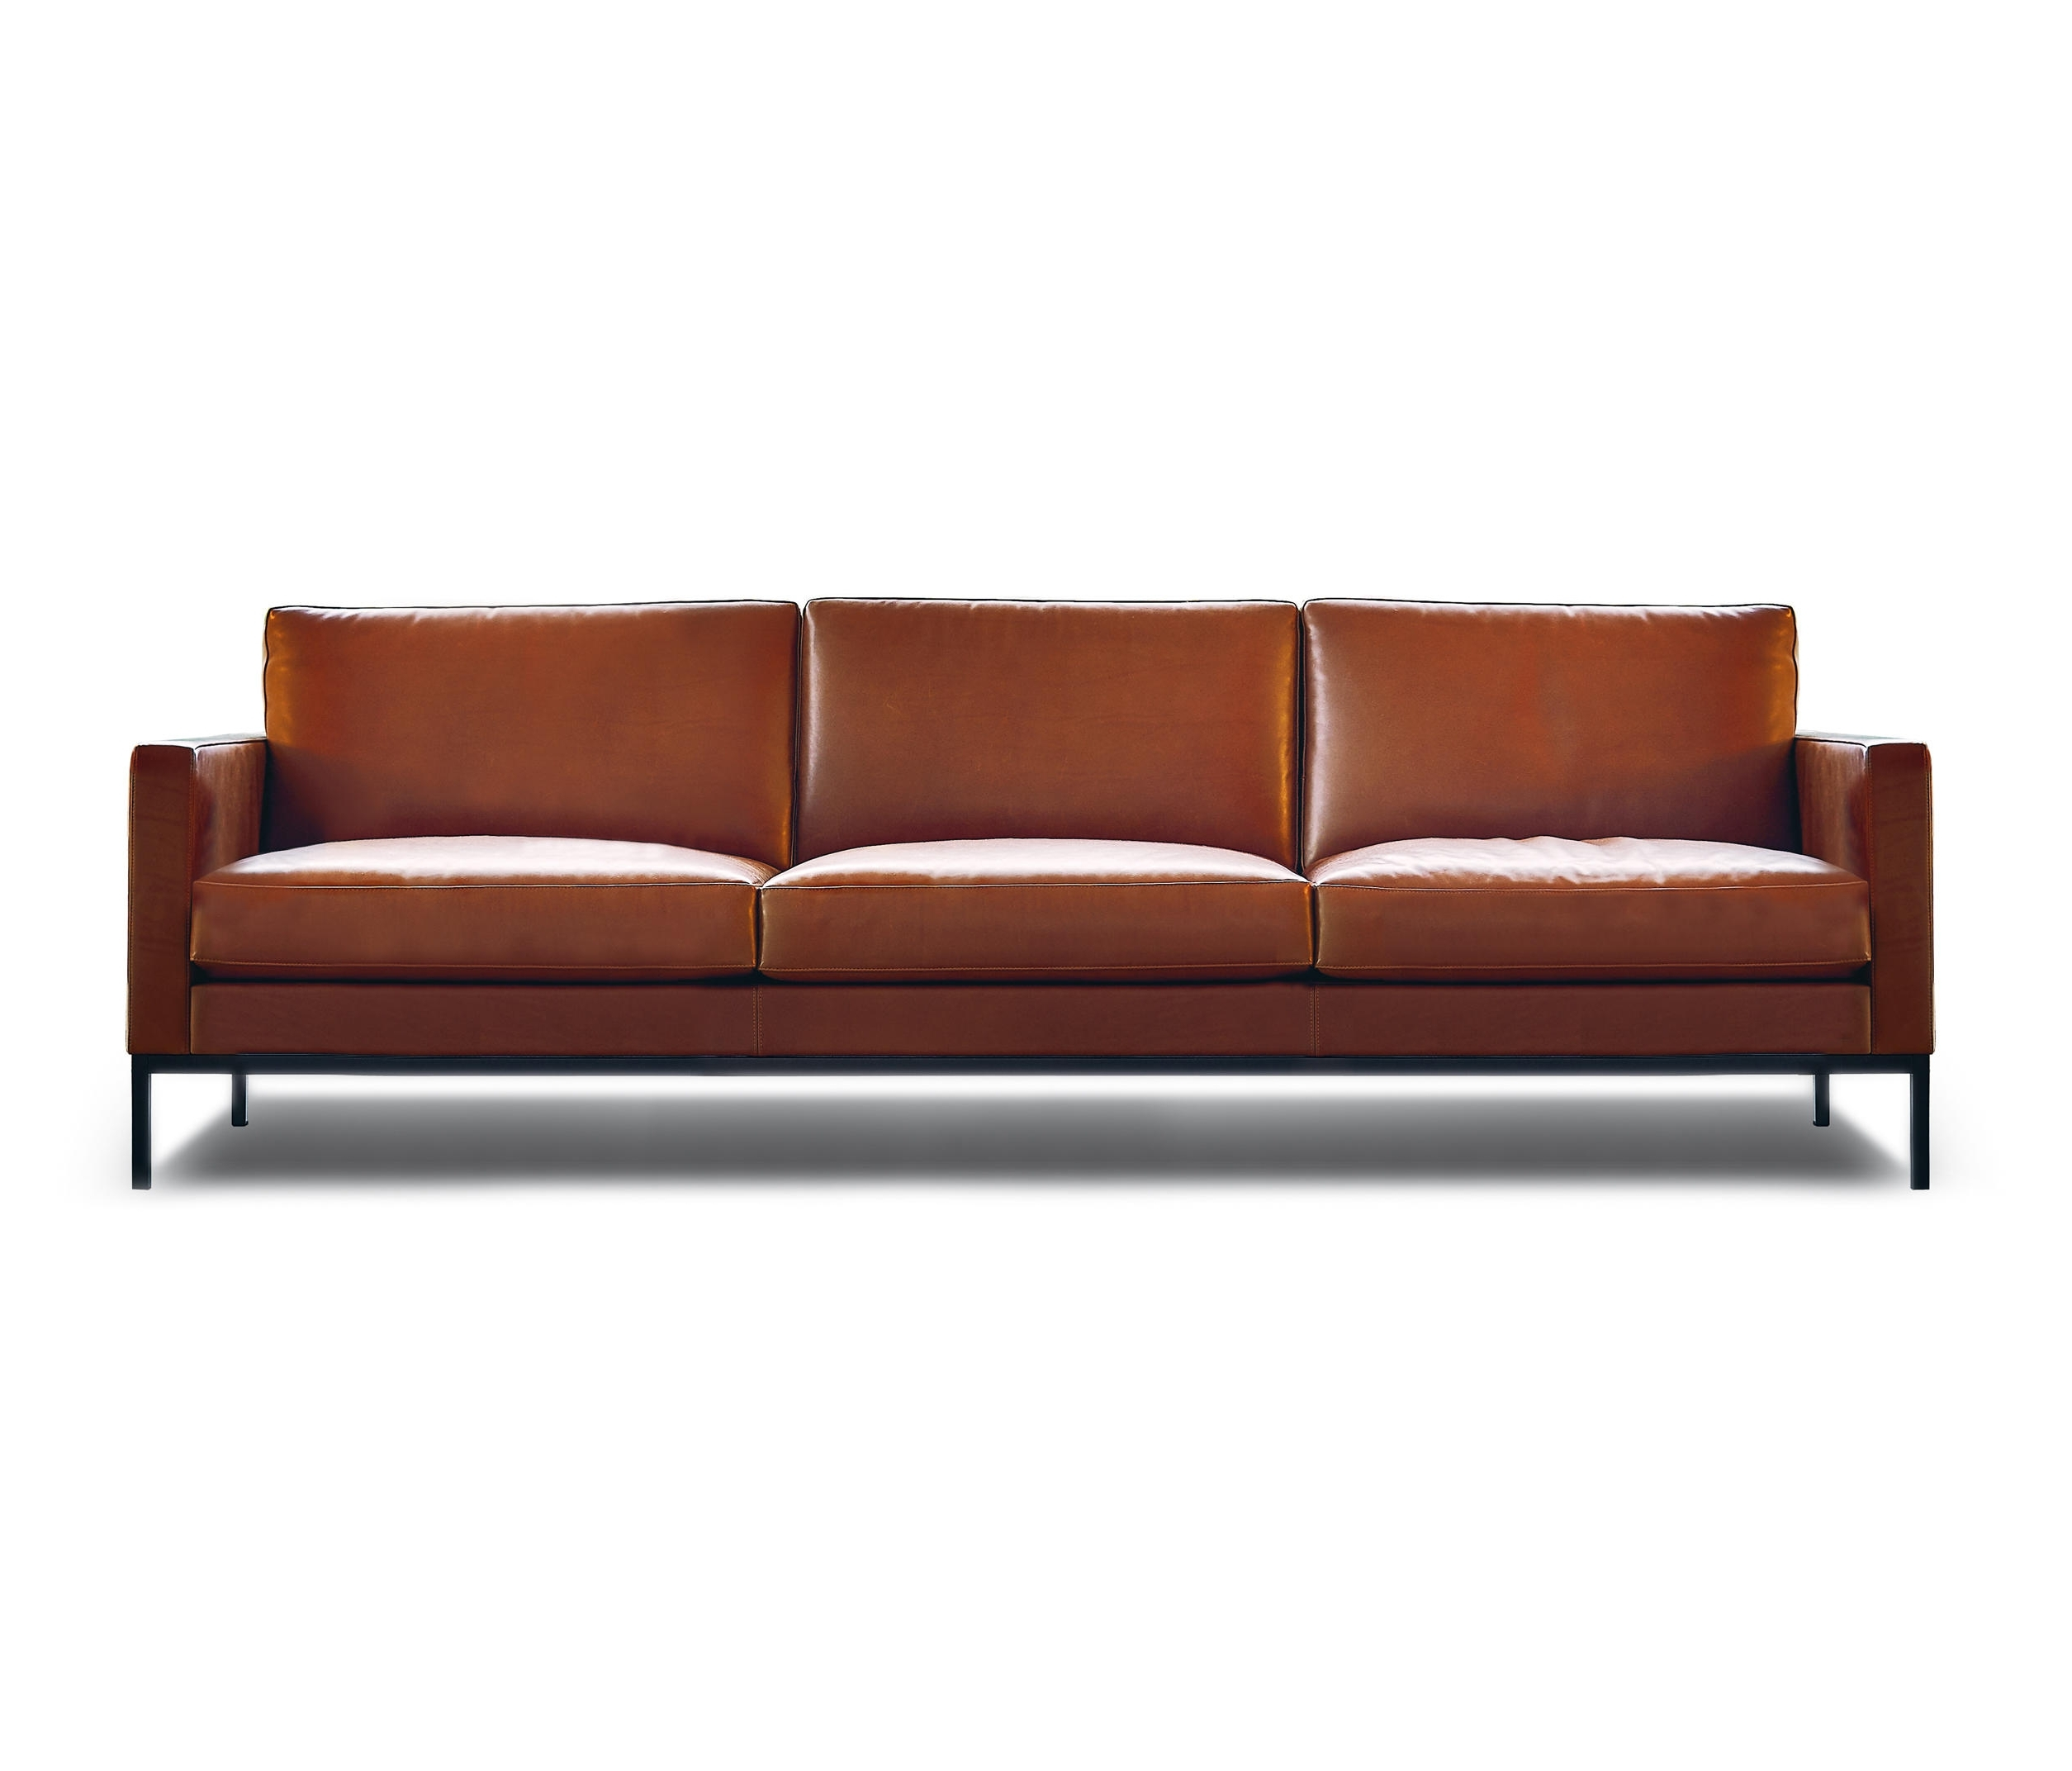 Florence Knoll Lounge 3 Seat Sofa – Lounge Sofas From Knoll With Widely Used Florence Knoll 3 Seater Sofas (View 9 of 15)